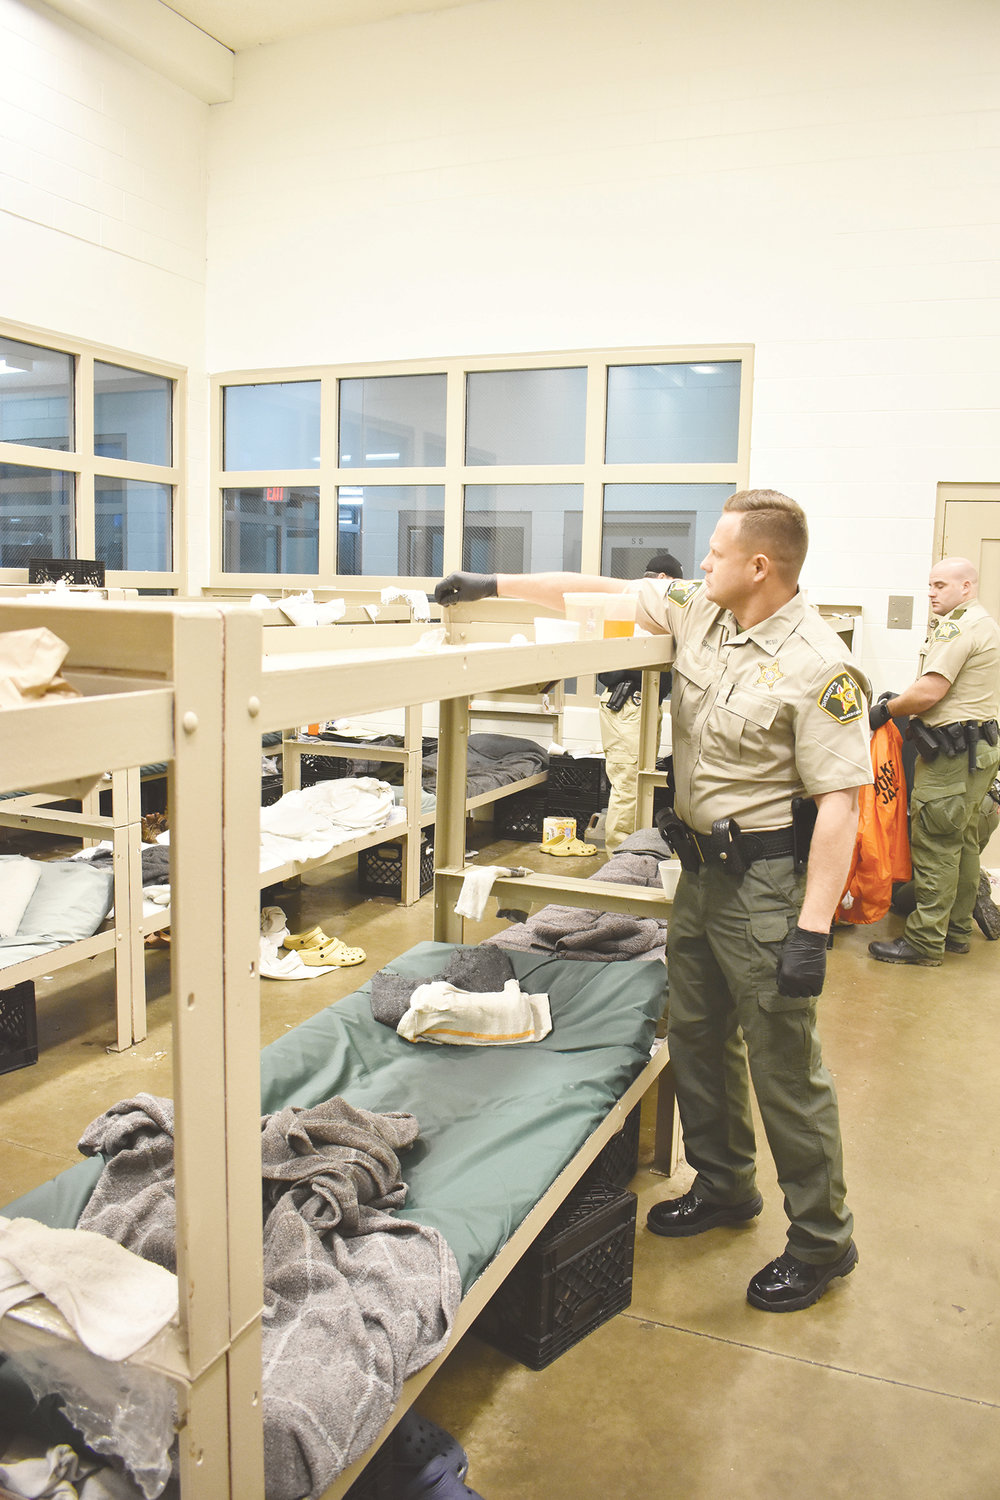 Sheriff Nick Smith reaches over to look for items in the bunks of the trustee area of the Walker County Jail during a sweep held on Wednesday. Smith is eager to address a number of issues at the jail, and has been seen often in the cell areas this week.